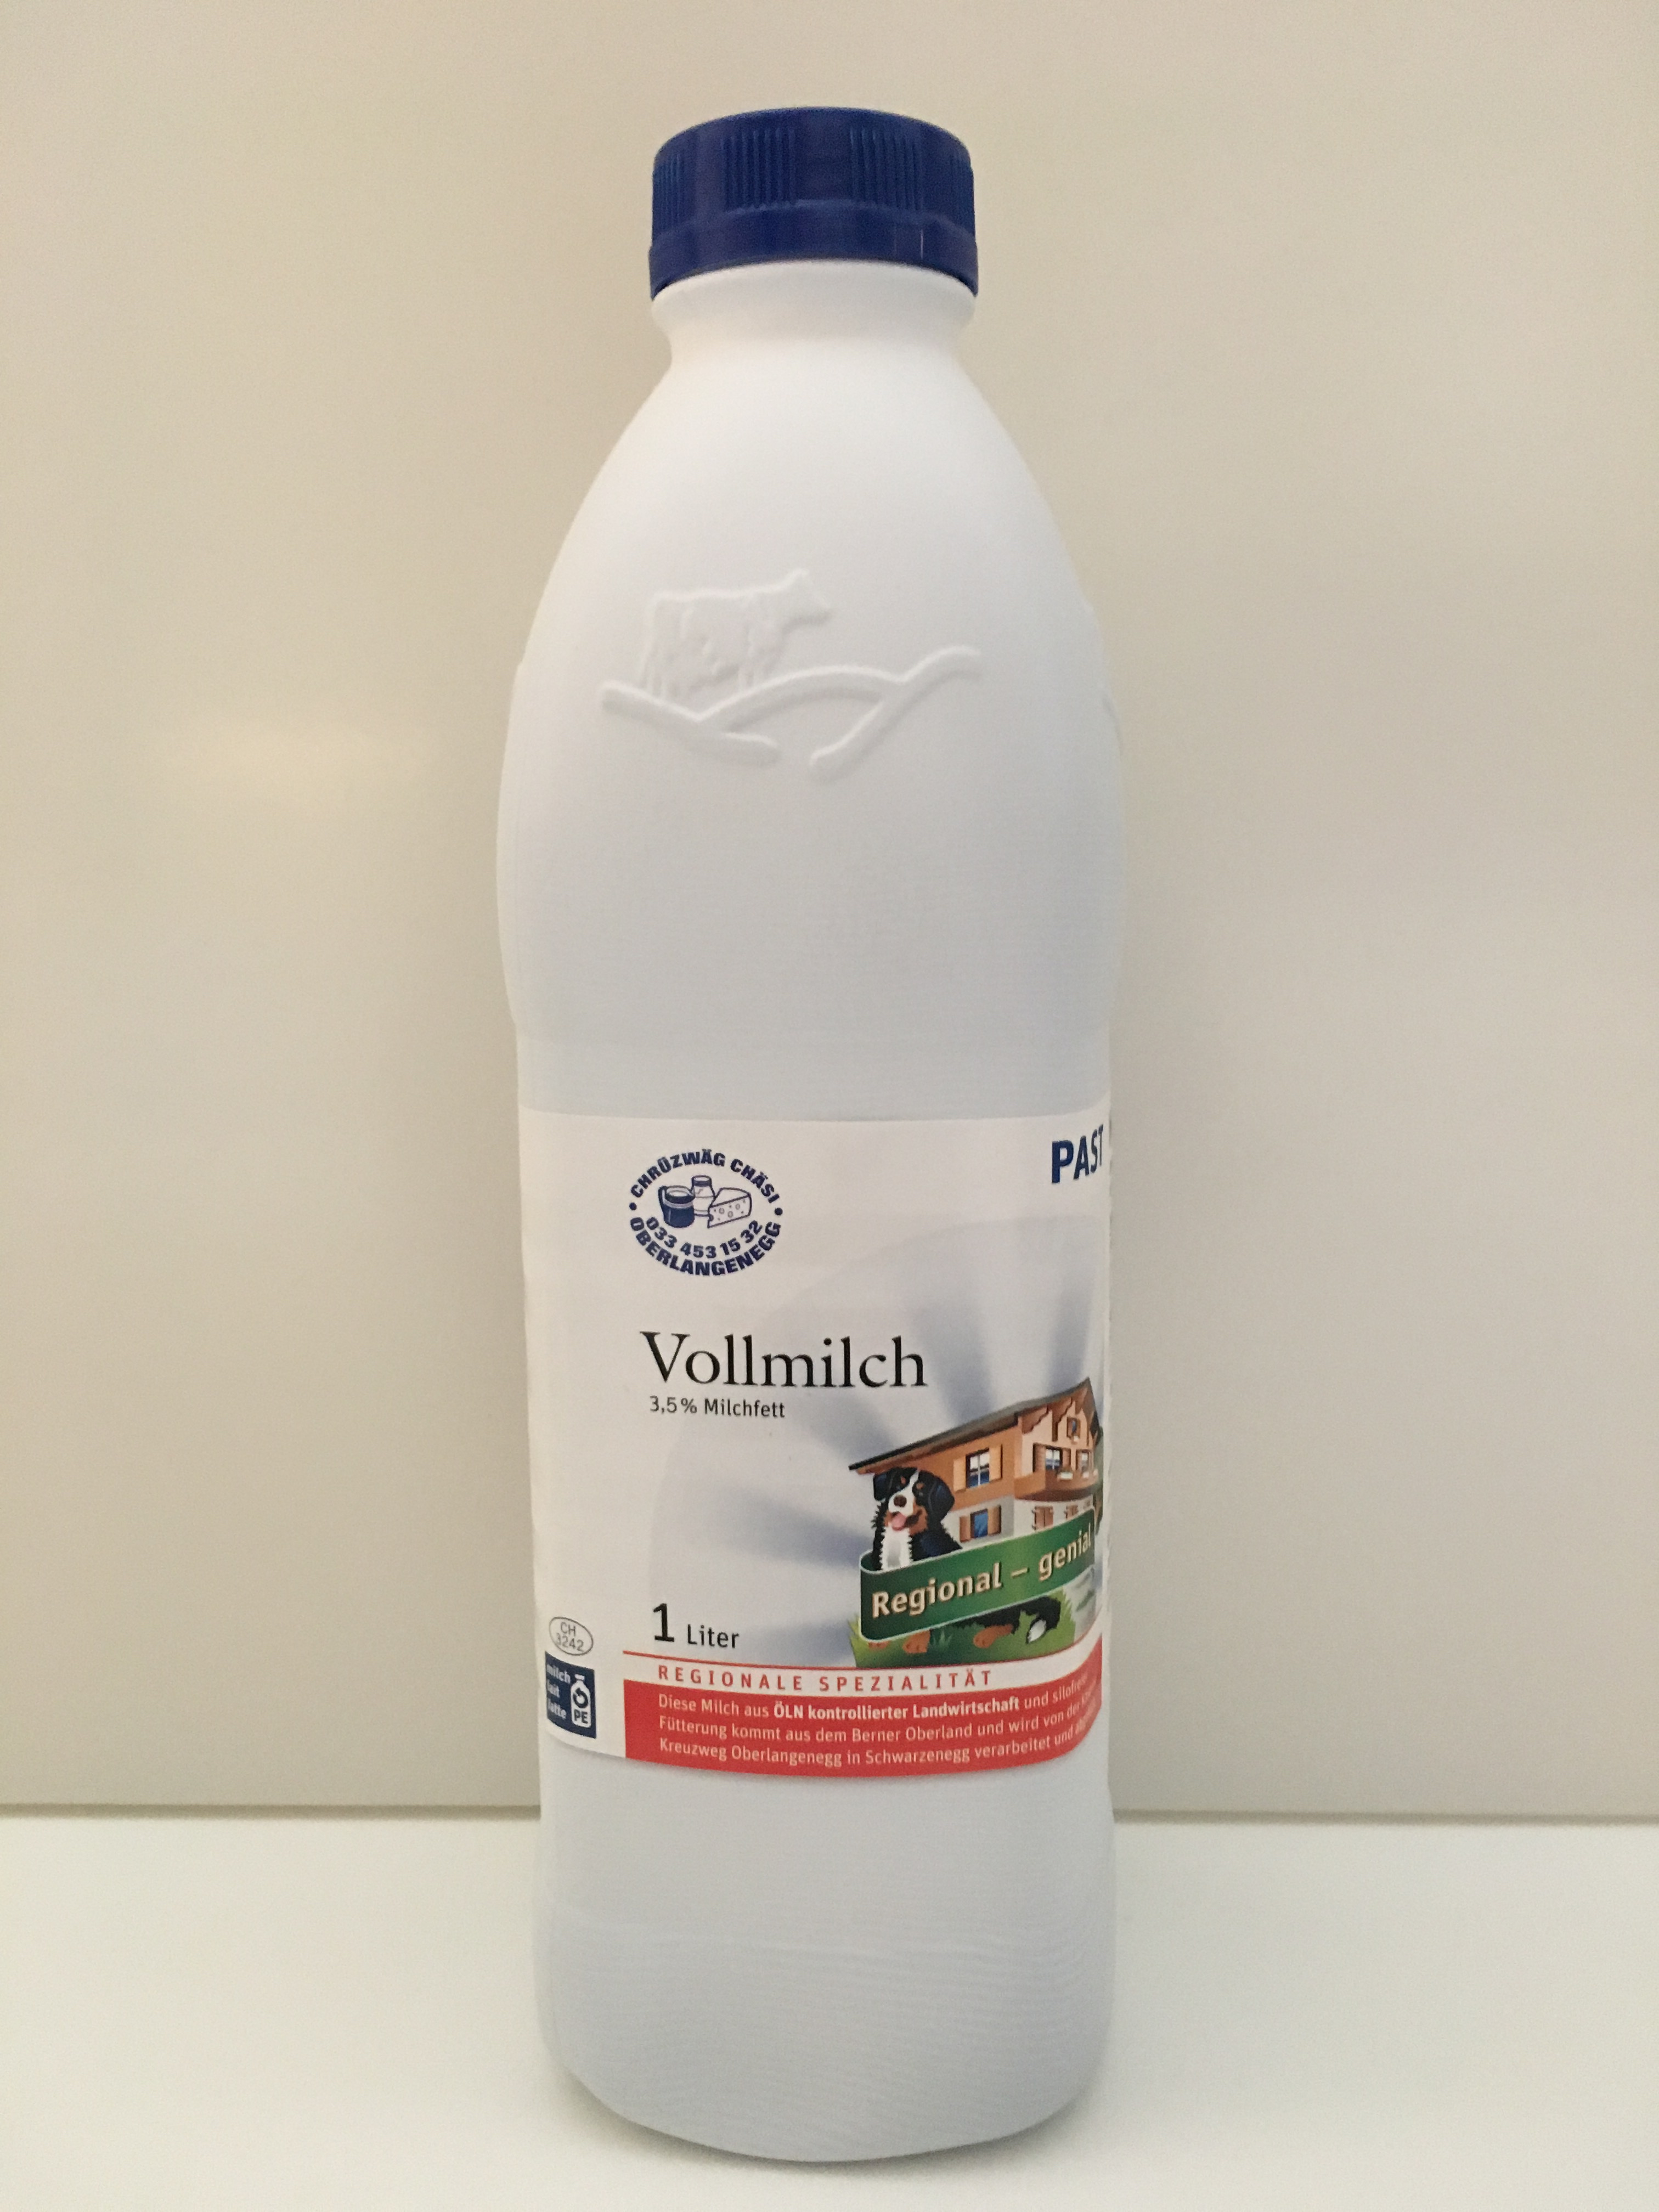 Milch: Vollmilch past. 3,5% Fett Region Emmental